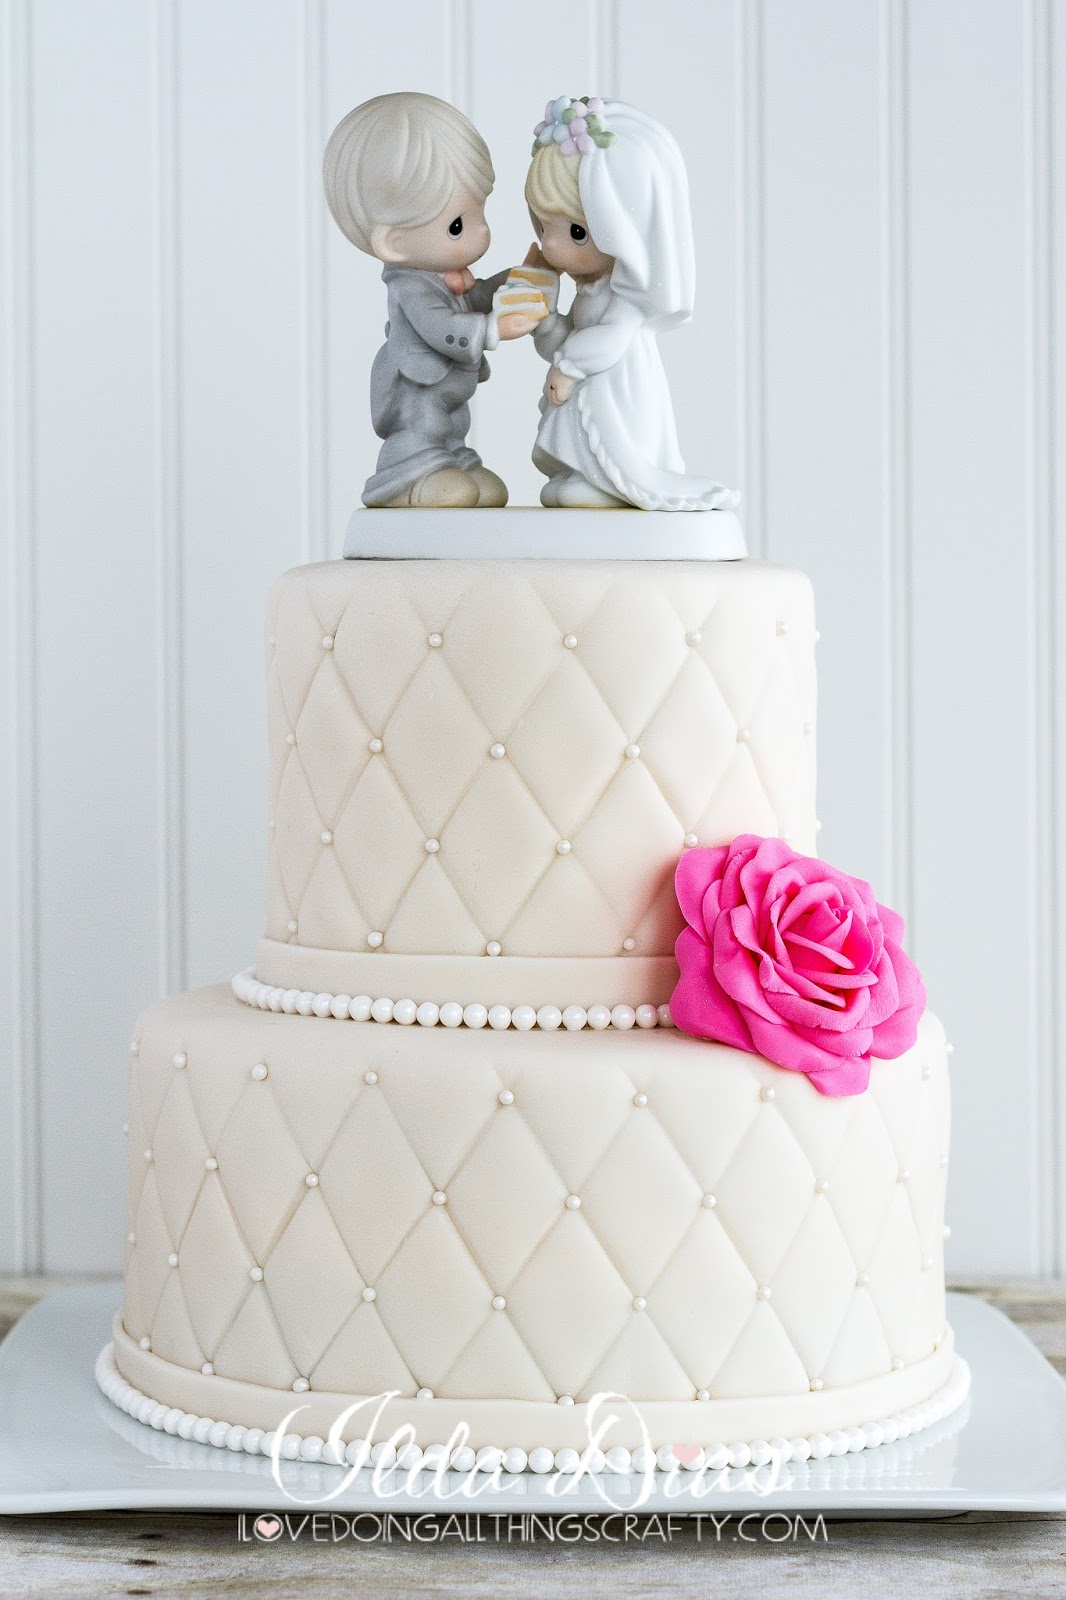 I Love Doing All Things Crafty: Karen's Quilted Wedding Cake and Card : quilted wedding cake - Adamdwight.com